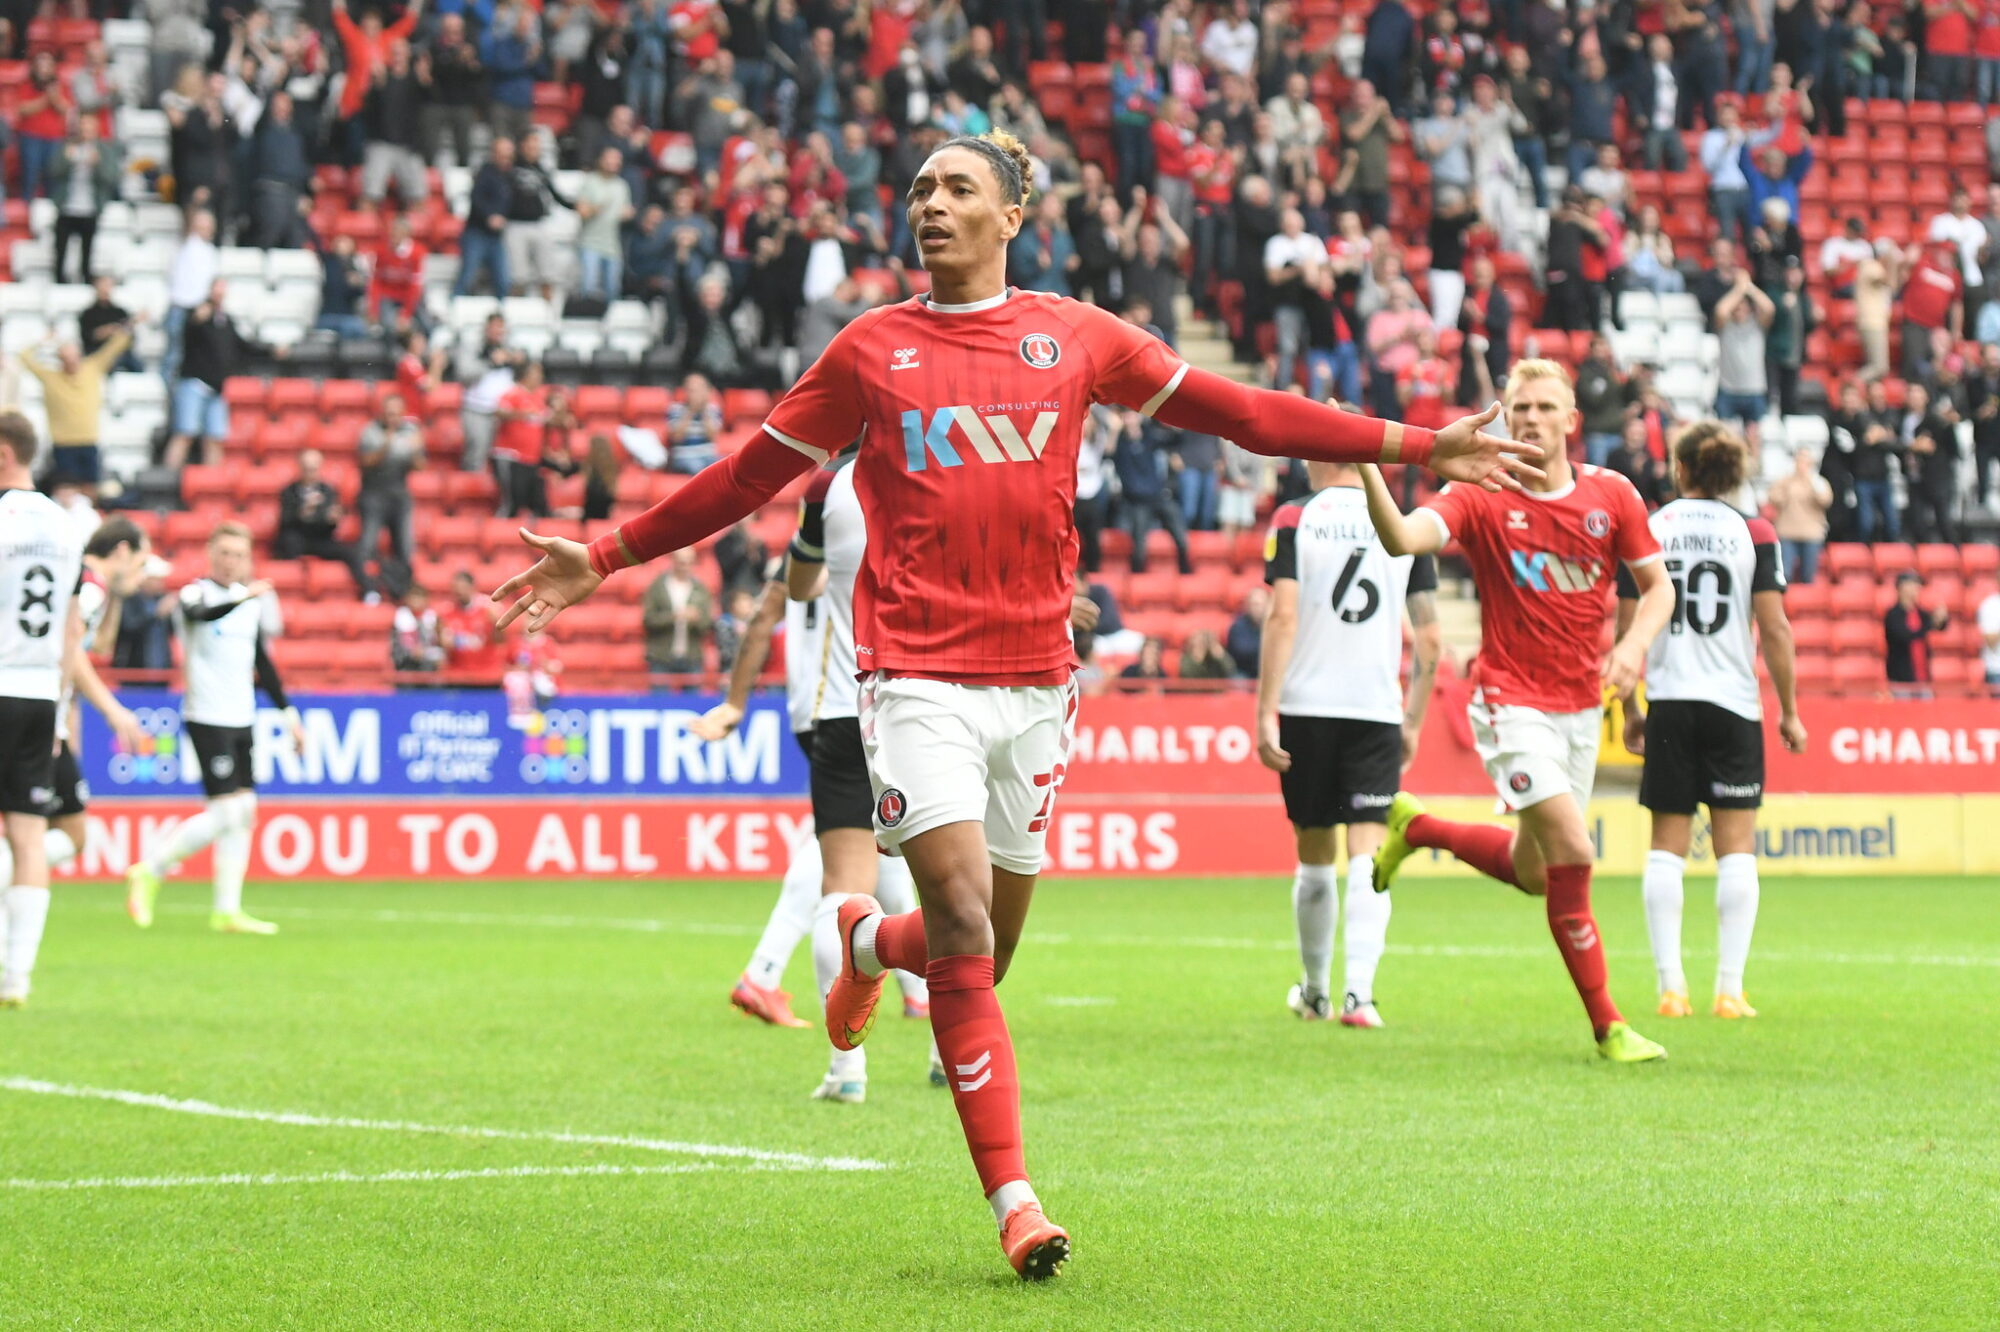 Nigel Adkins explains how change of shape helped Charlton recover from early setback against Portsmouth